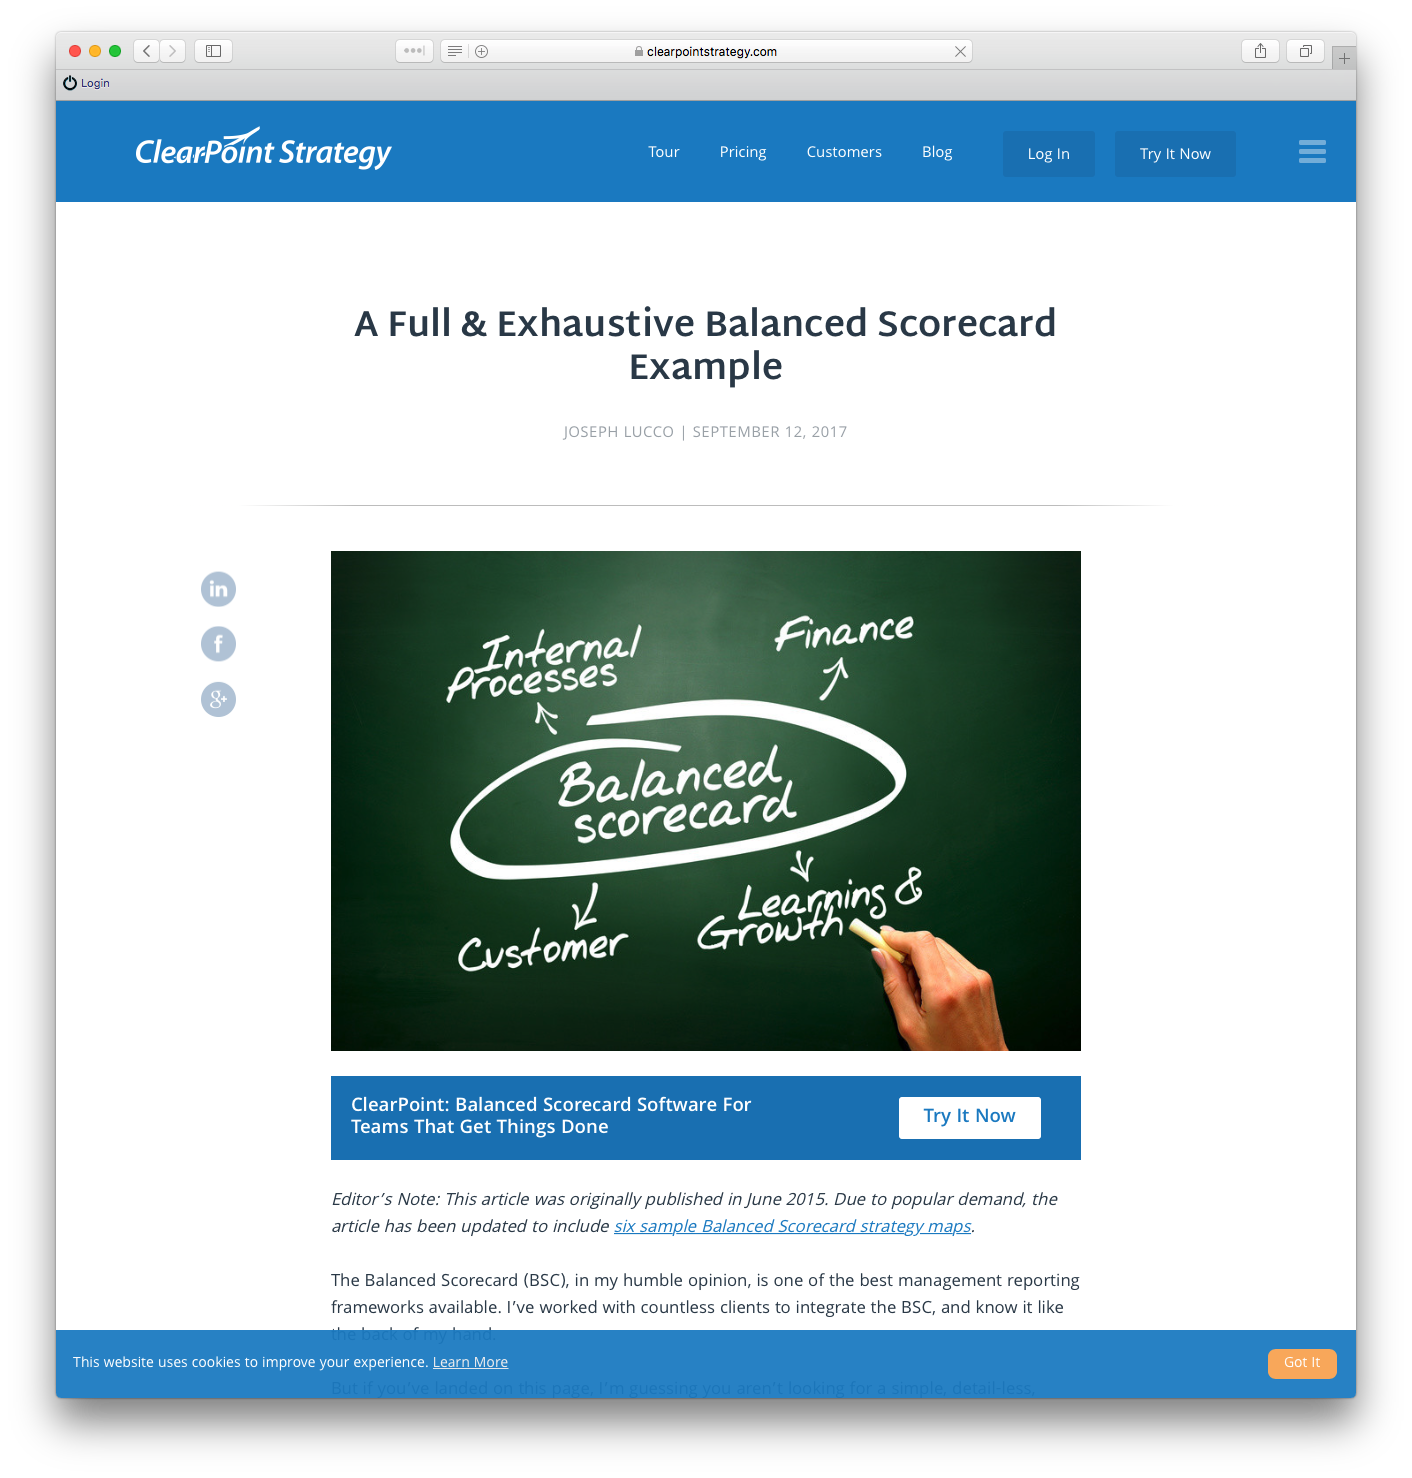 Example of an example post - A Full & Exhaustive Balanced Scorecard Example